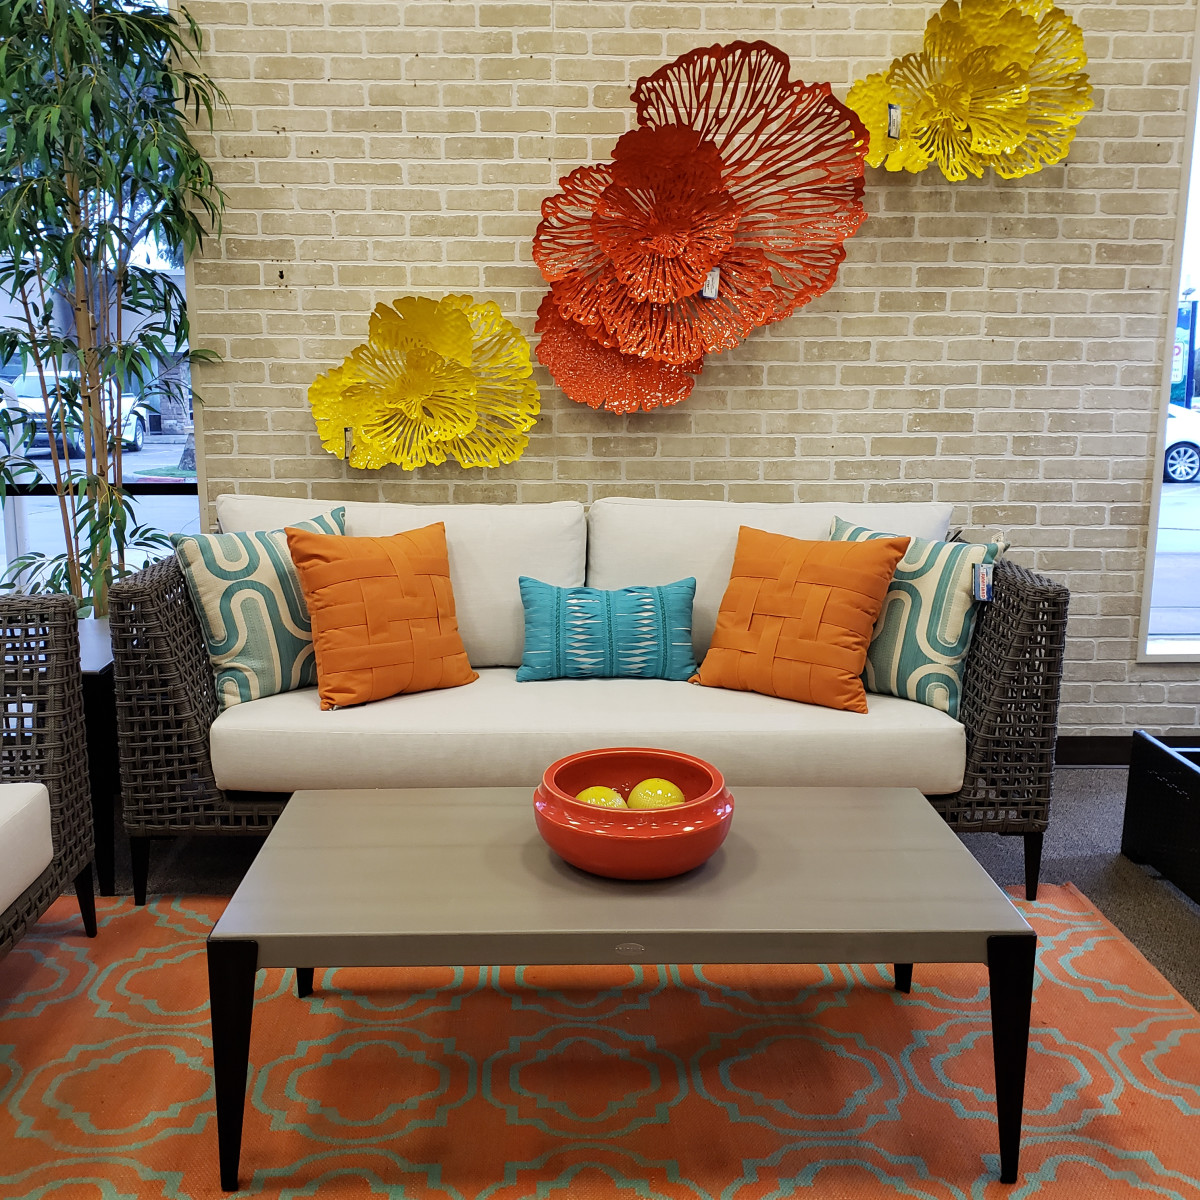 Indoor patio furniture display